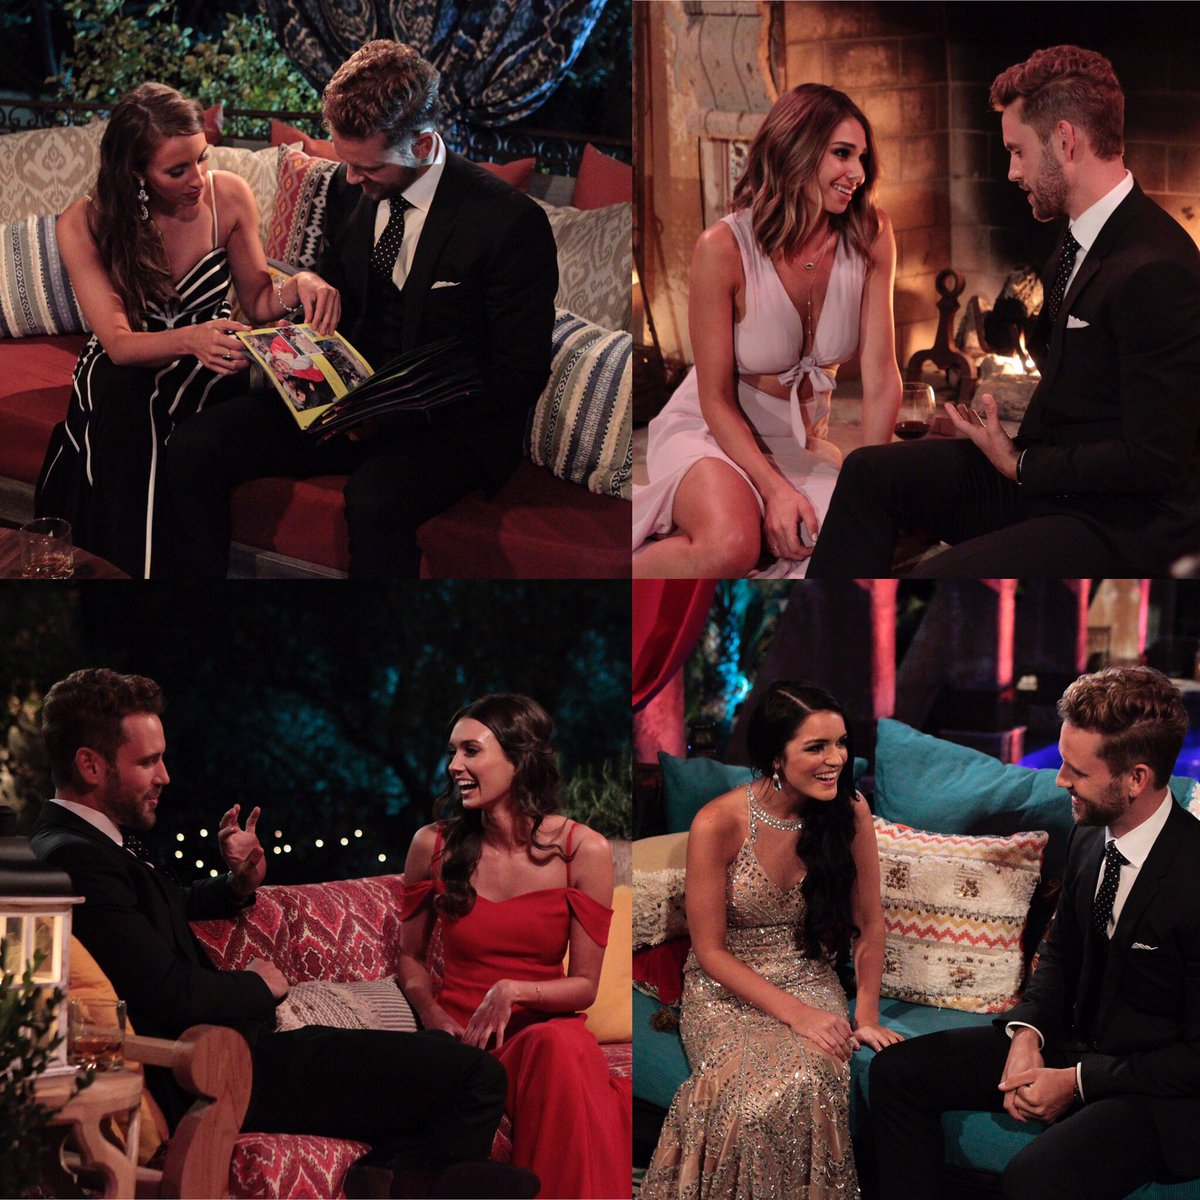 Kimmel - Nick Viall - Bachelor 21 - Episode 1 - Jan 1st - Jan 2nd - *Sleuthing Spoilers* - Page 37 C1NiisCWIAAw8i_